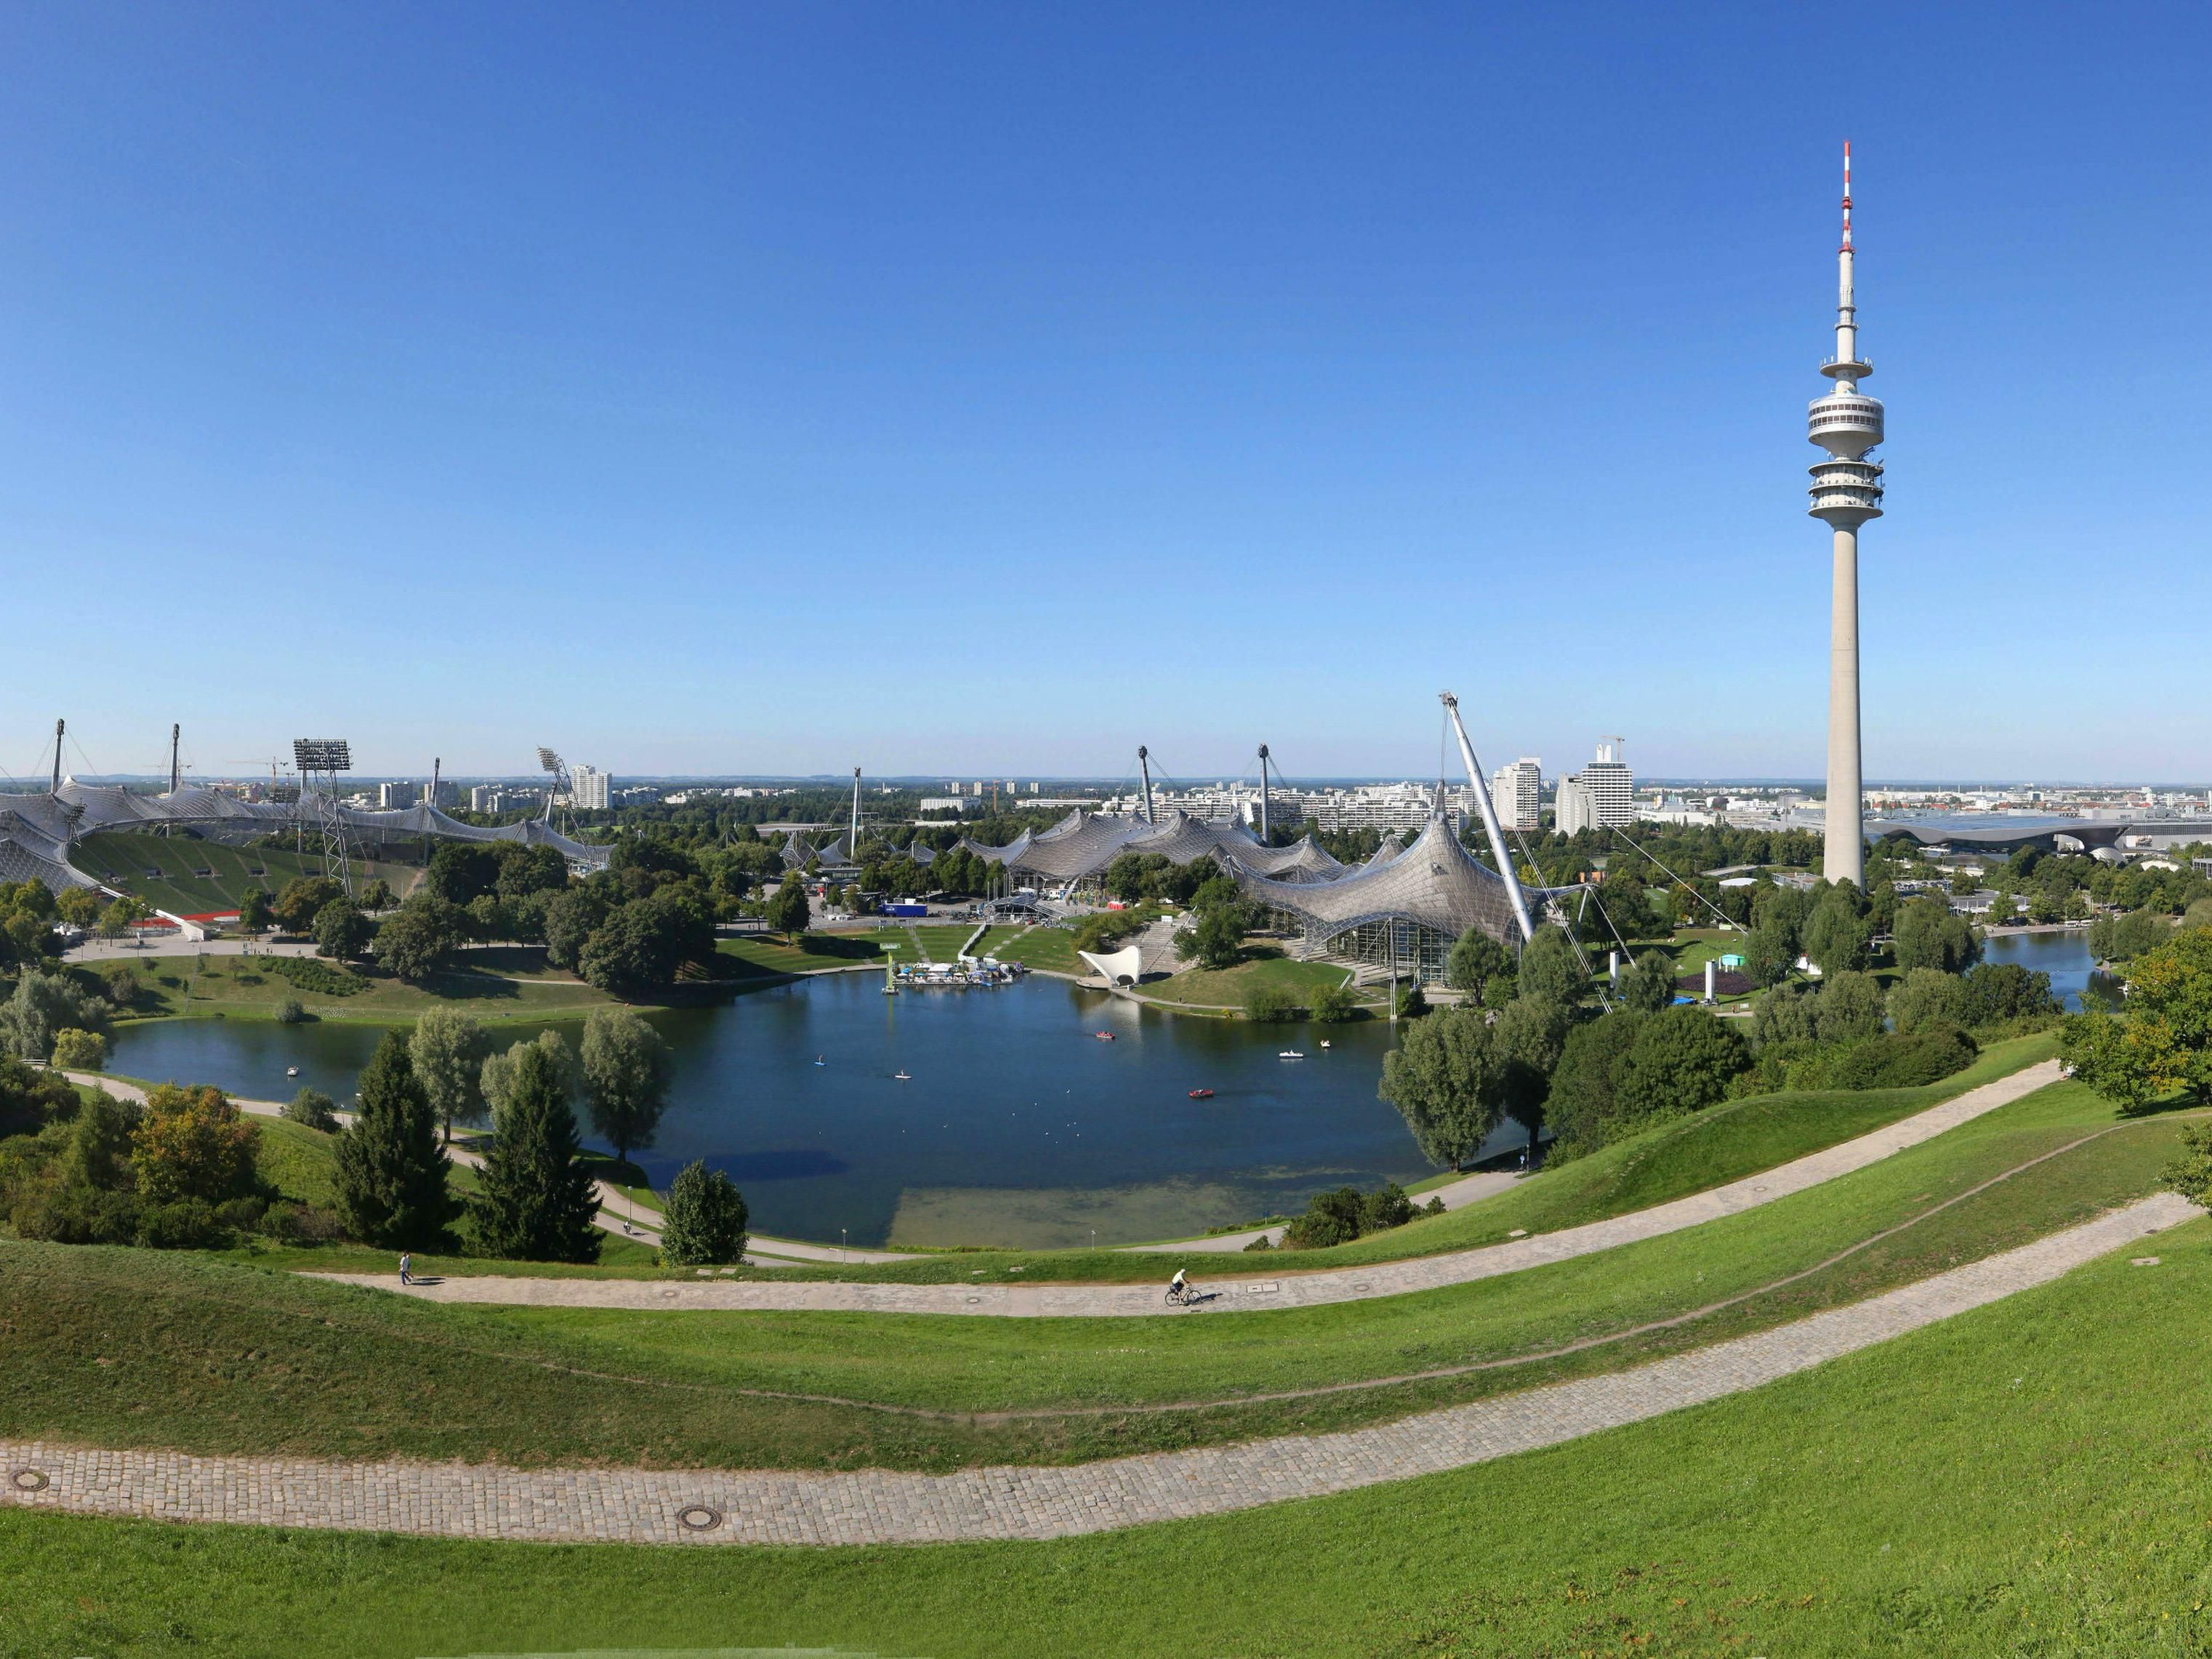 Another popular destination - the Munich Olympic site